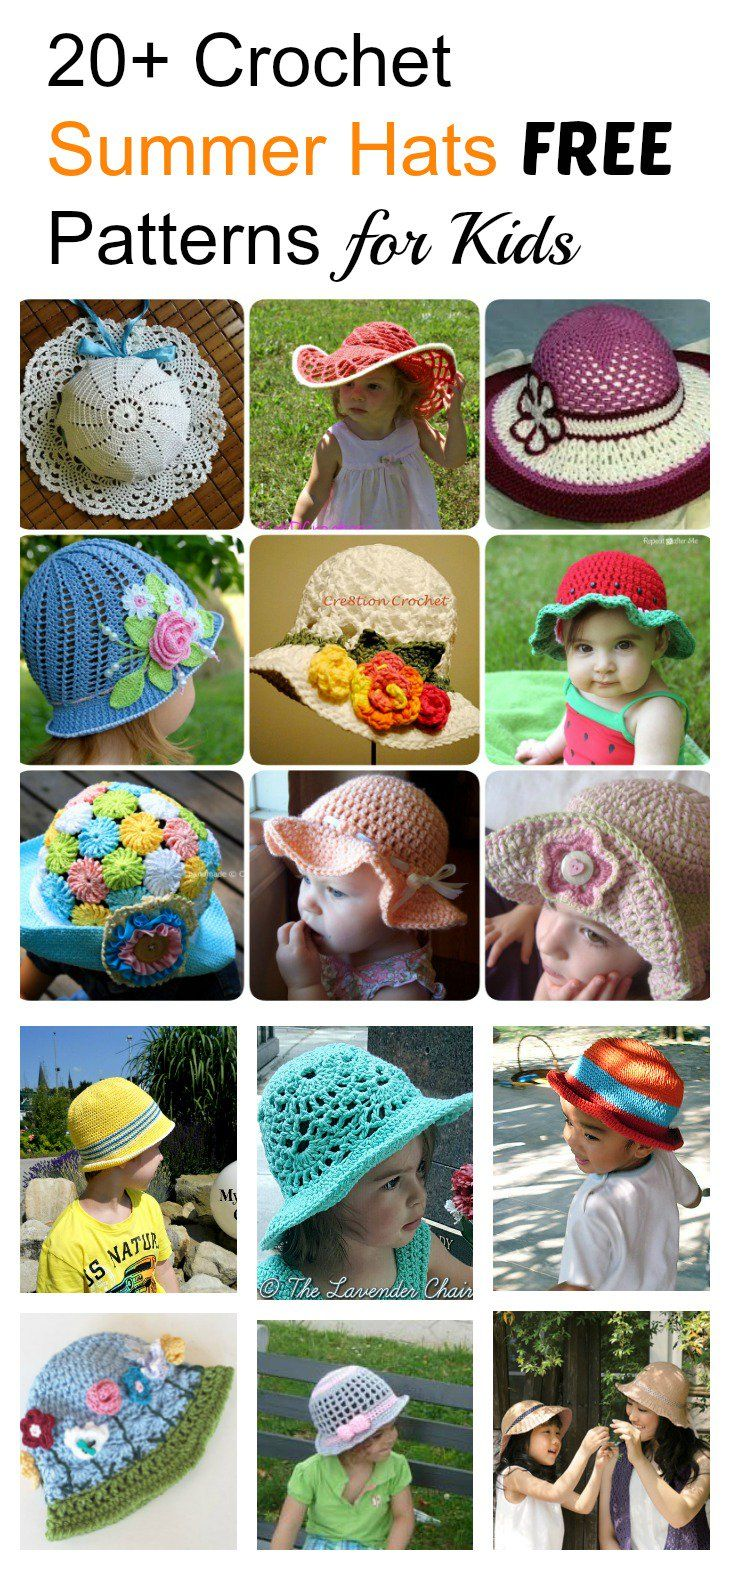 20+ Crochet Hat Free Patterns for Kids | crochet hat | Pinterest ...